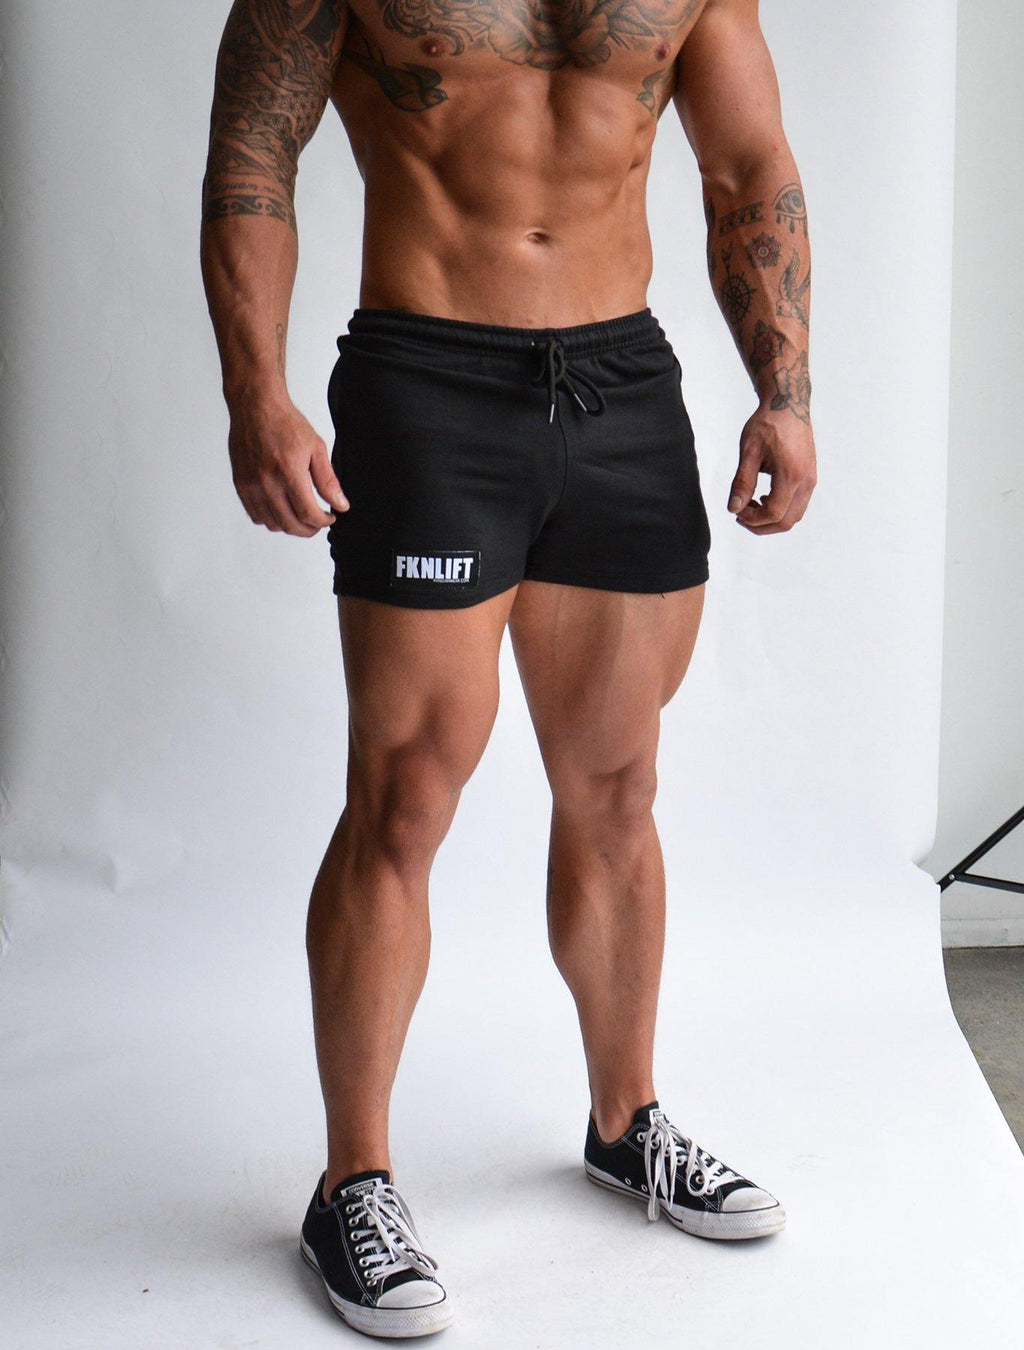 FKNLIFT | Men's Gym Shorts - FKN Gym Wear